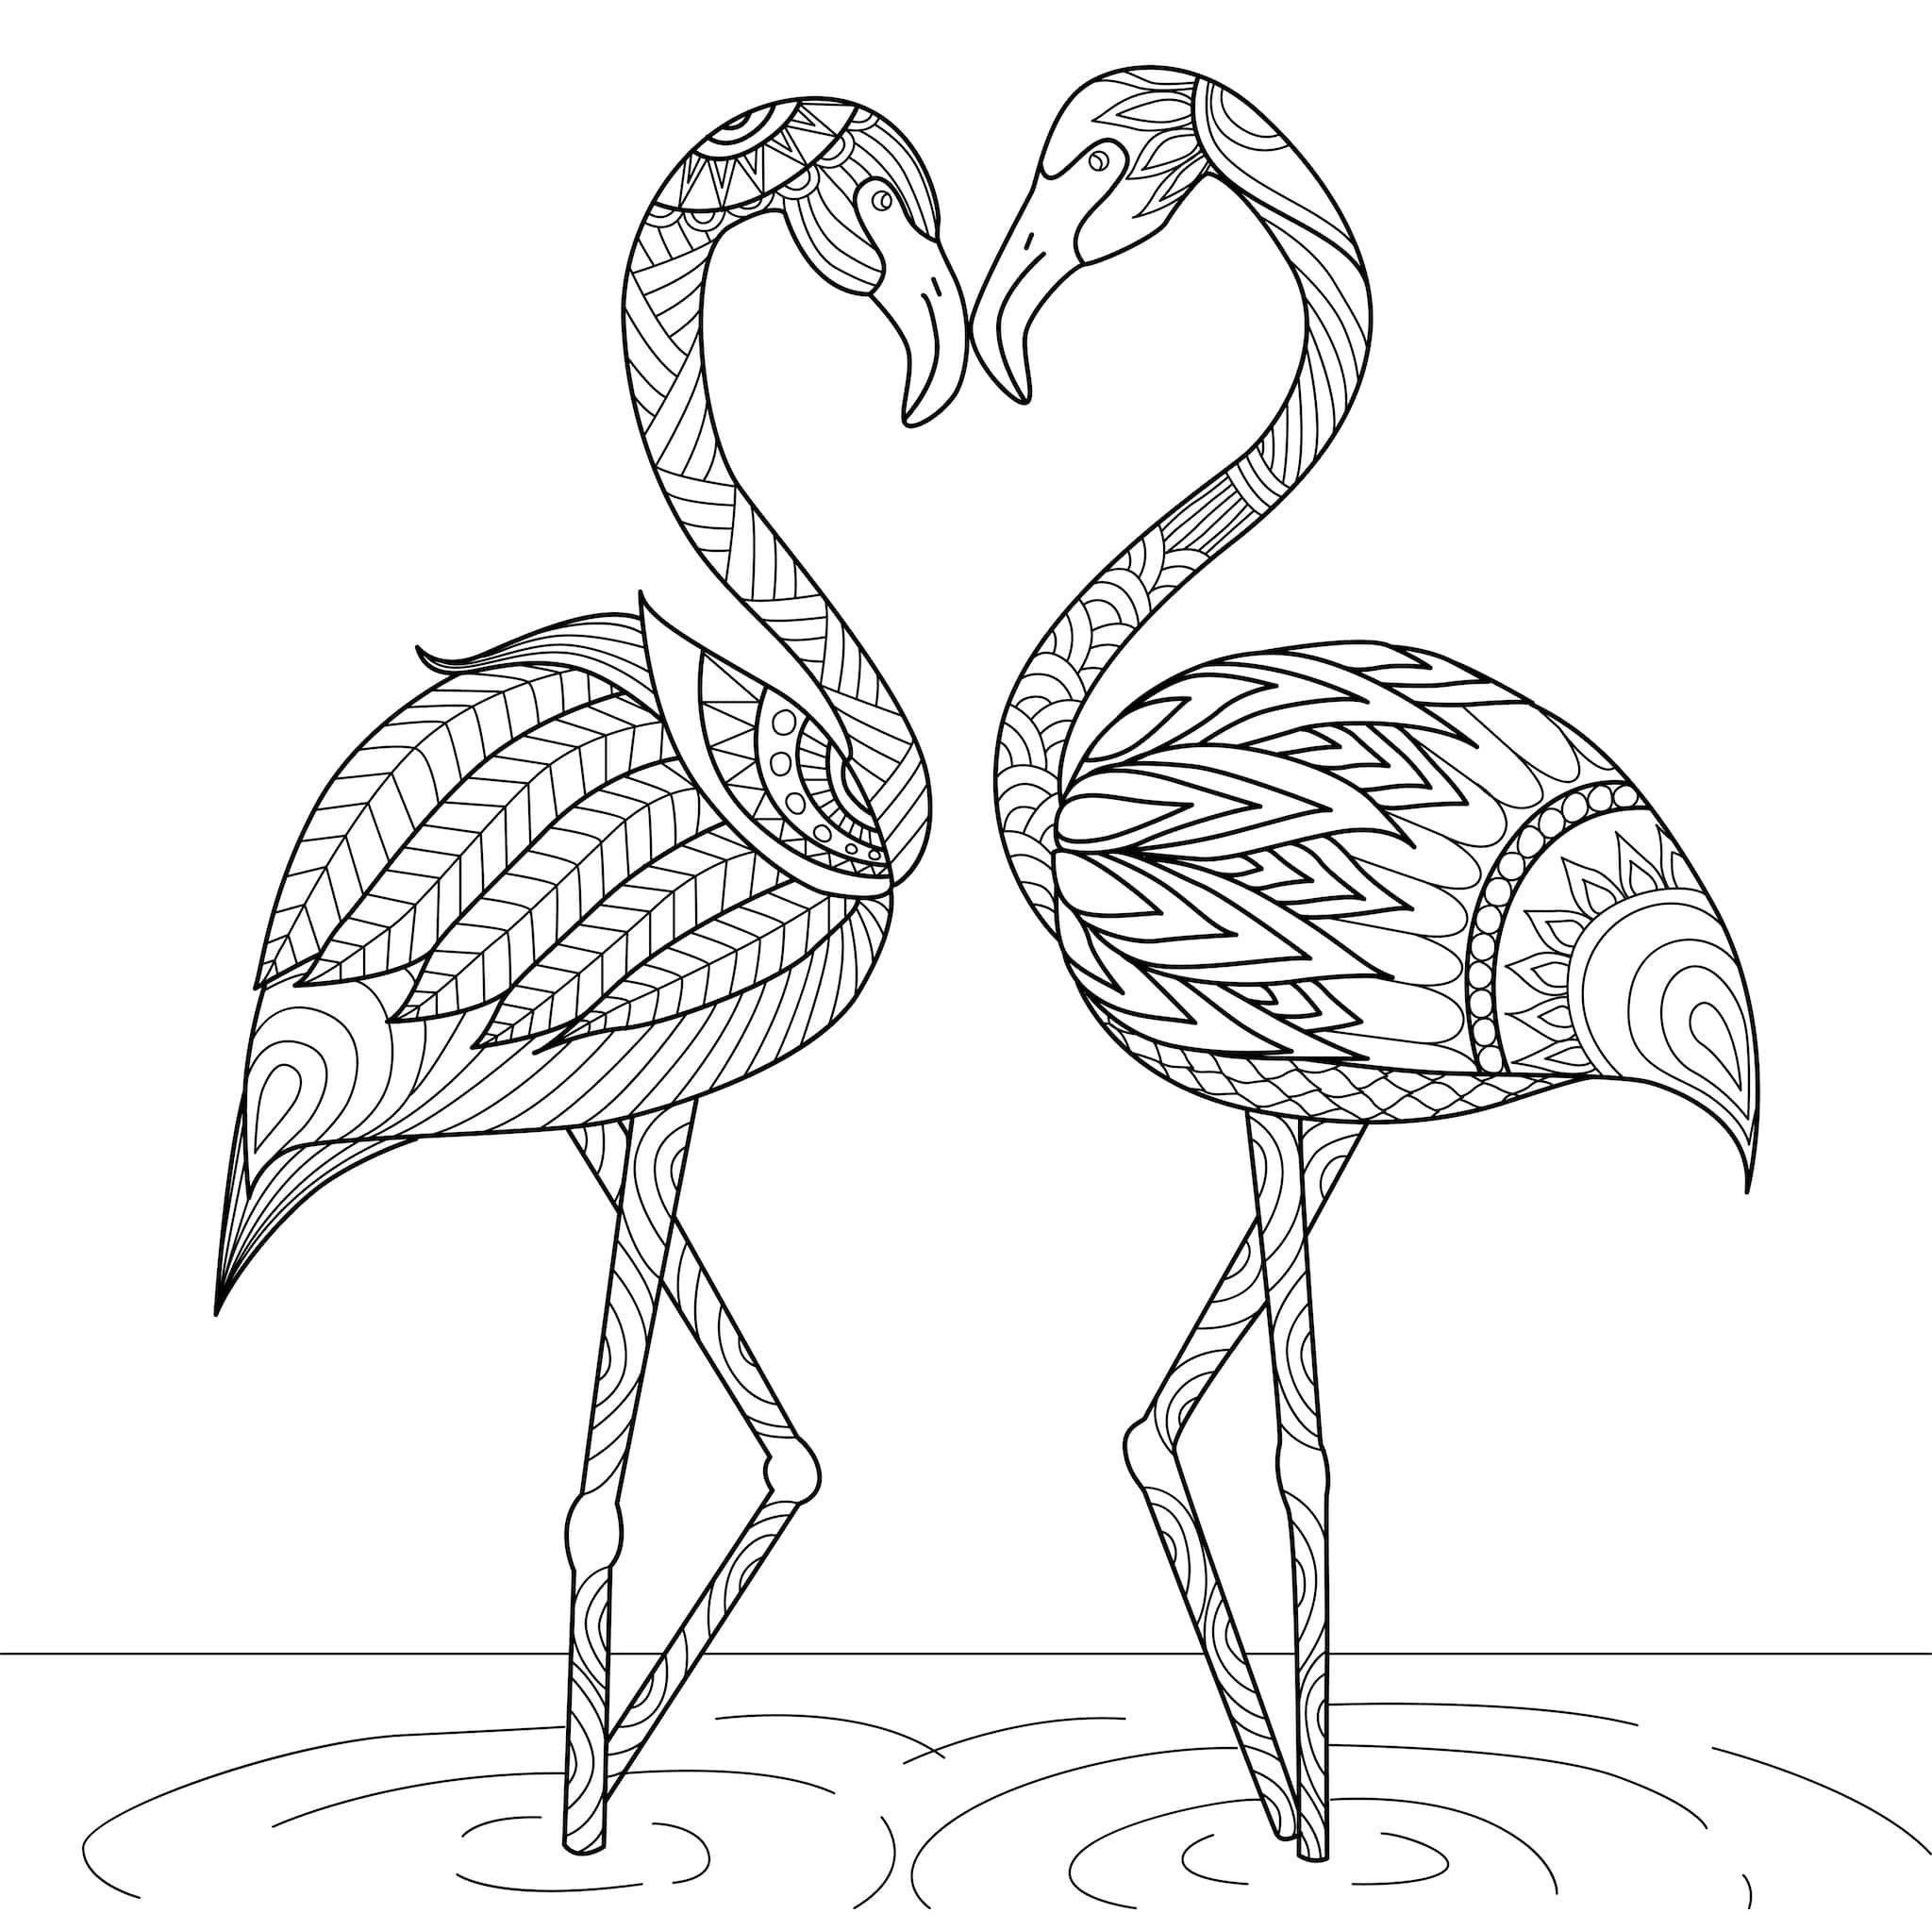 Disegni Belli Da Colorare Ispiratore San Valentino Disegni Da Colorare Per Bambini Nostrofigl Bam In 2020 Bird Coloring Pages Flamingo Coloring Page Coloring Books